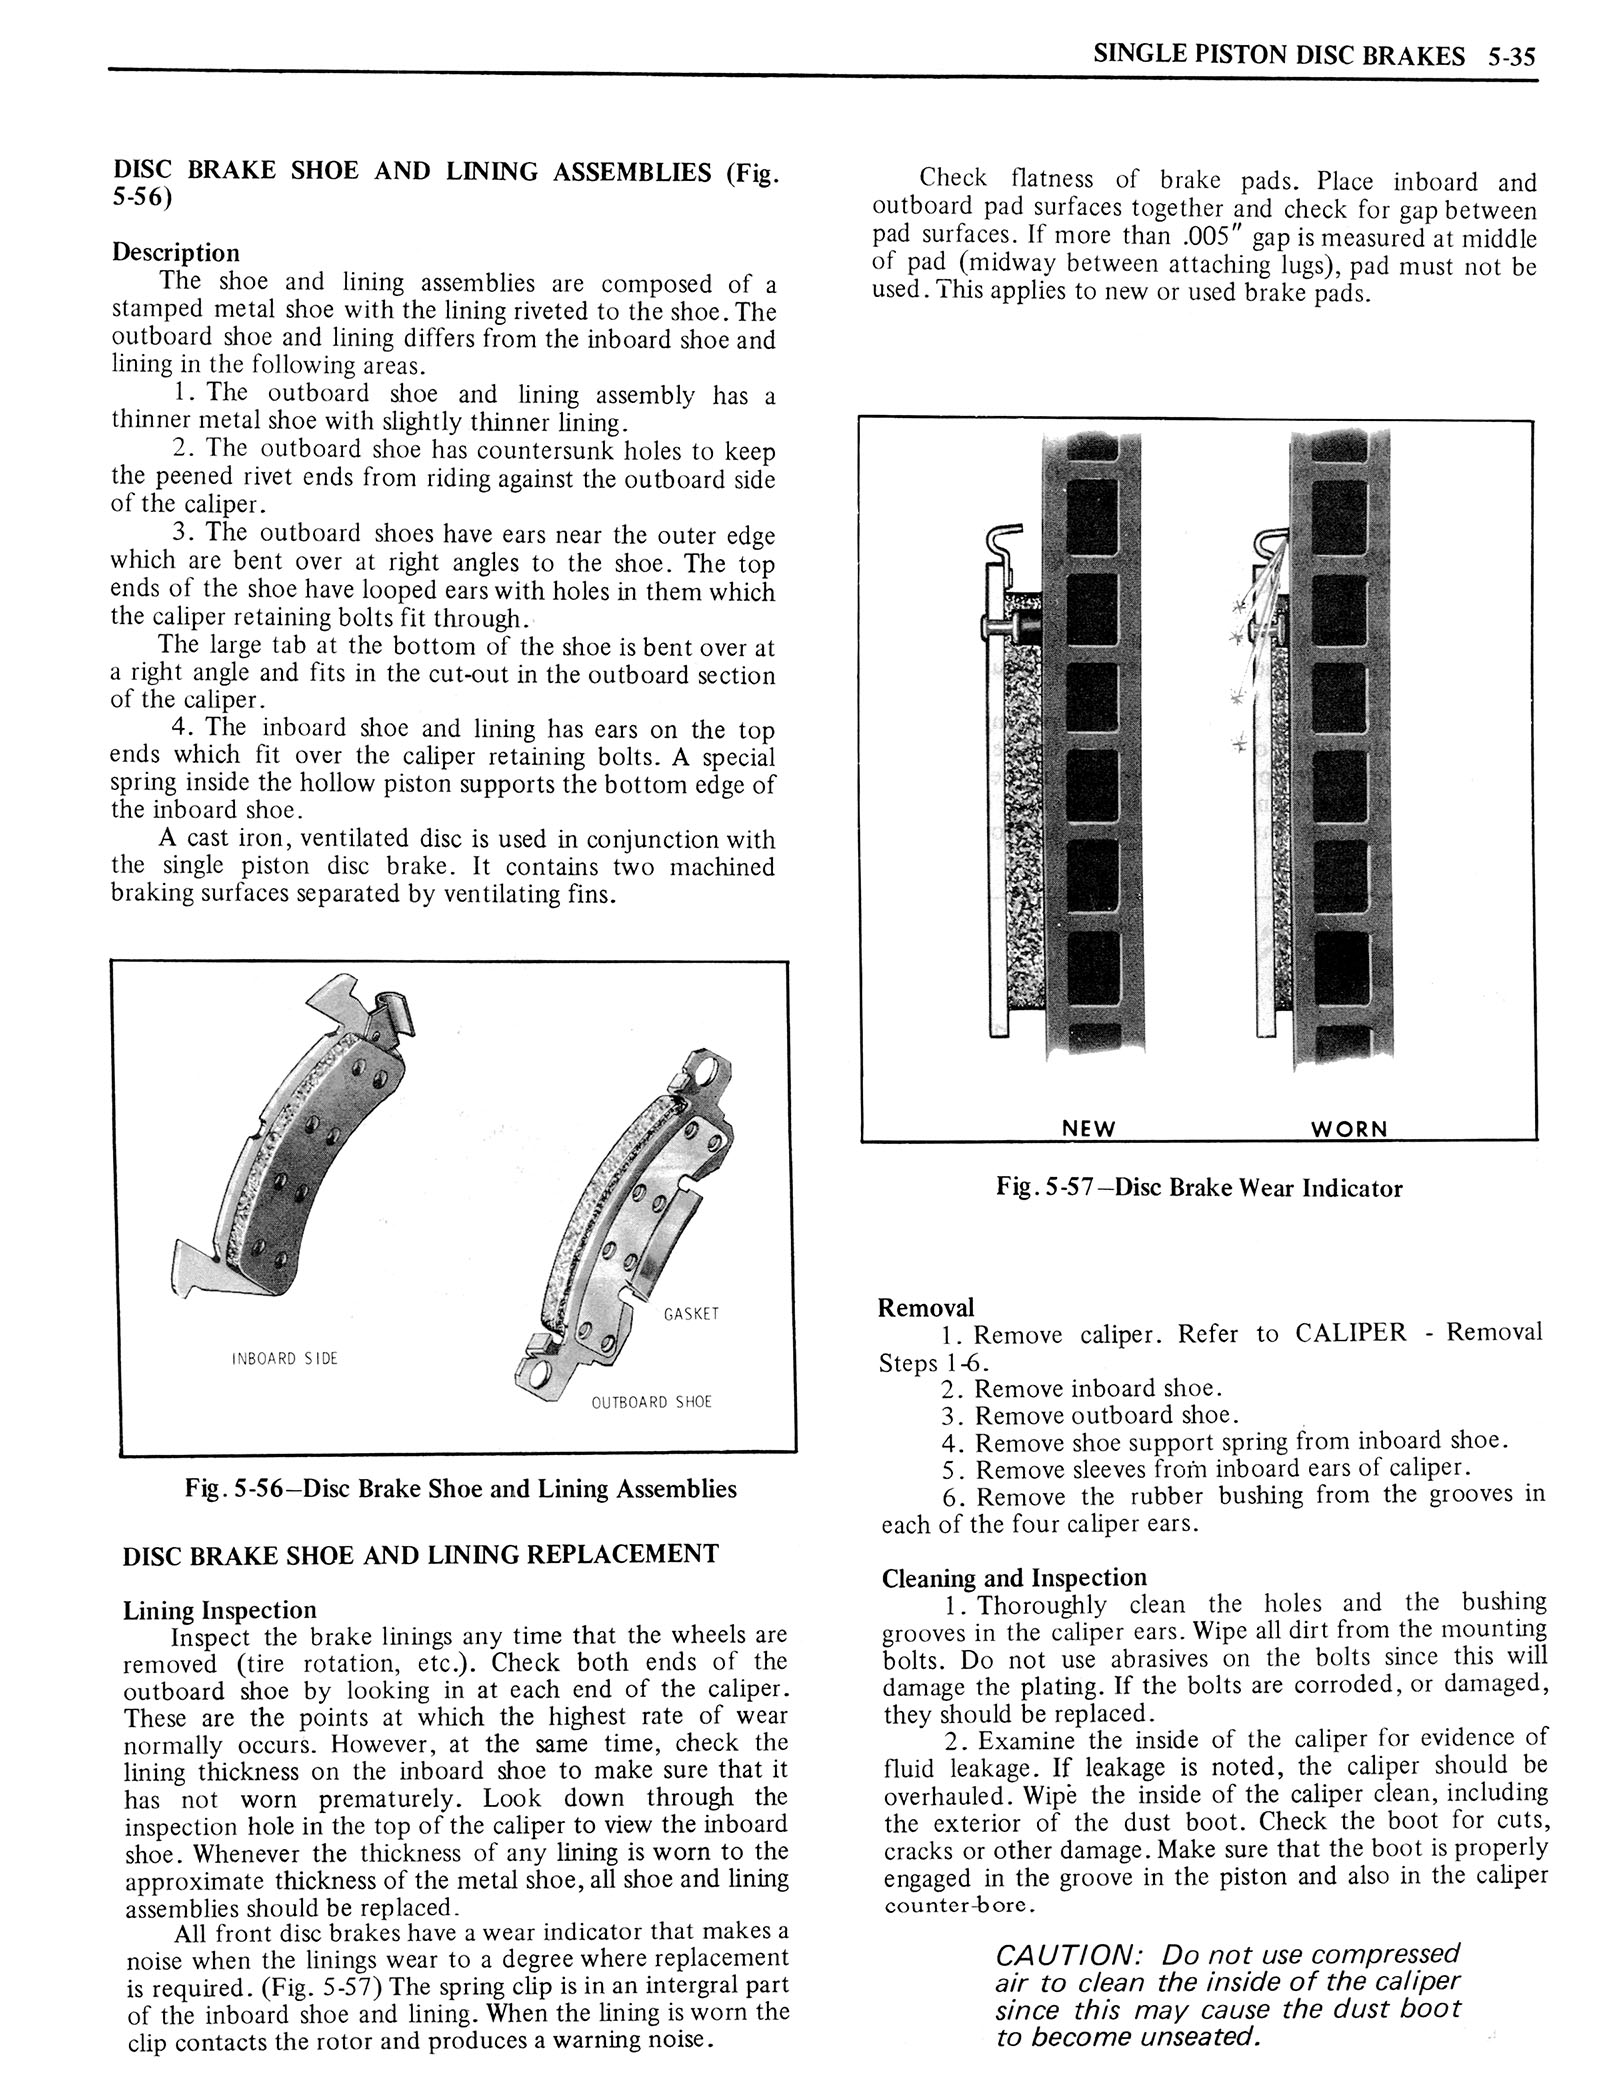 1976 Oldsmobile Service Manual page 366 of 1390